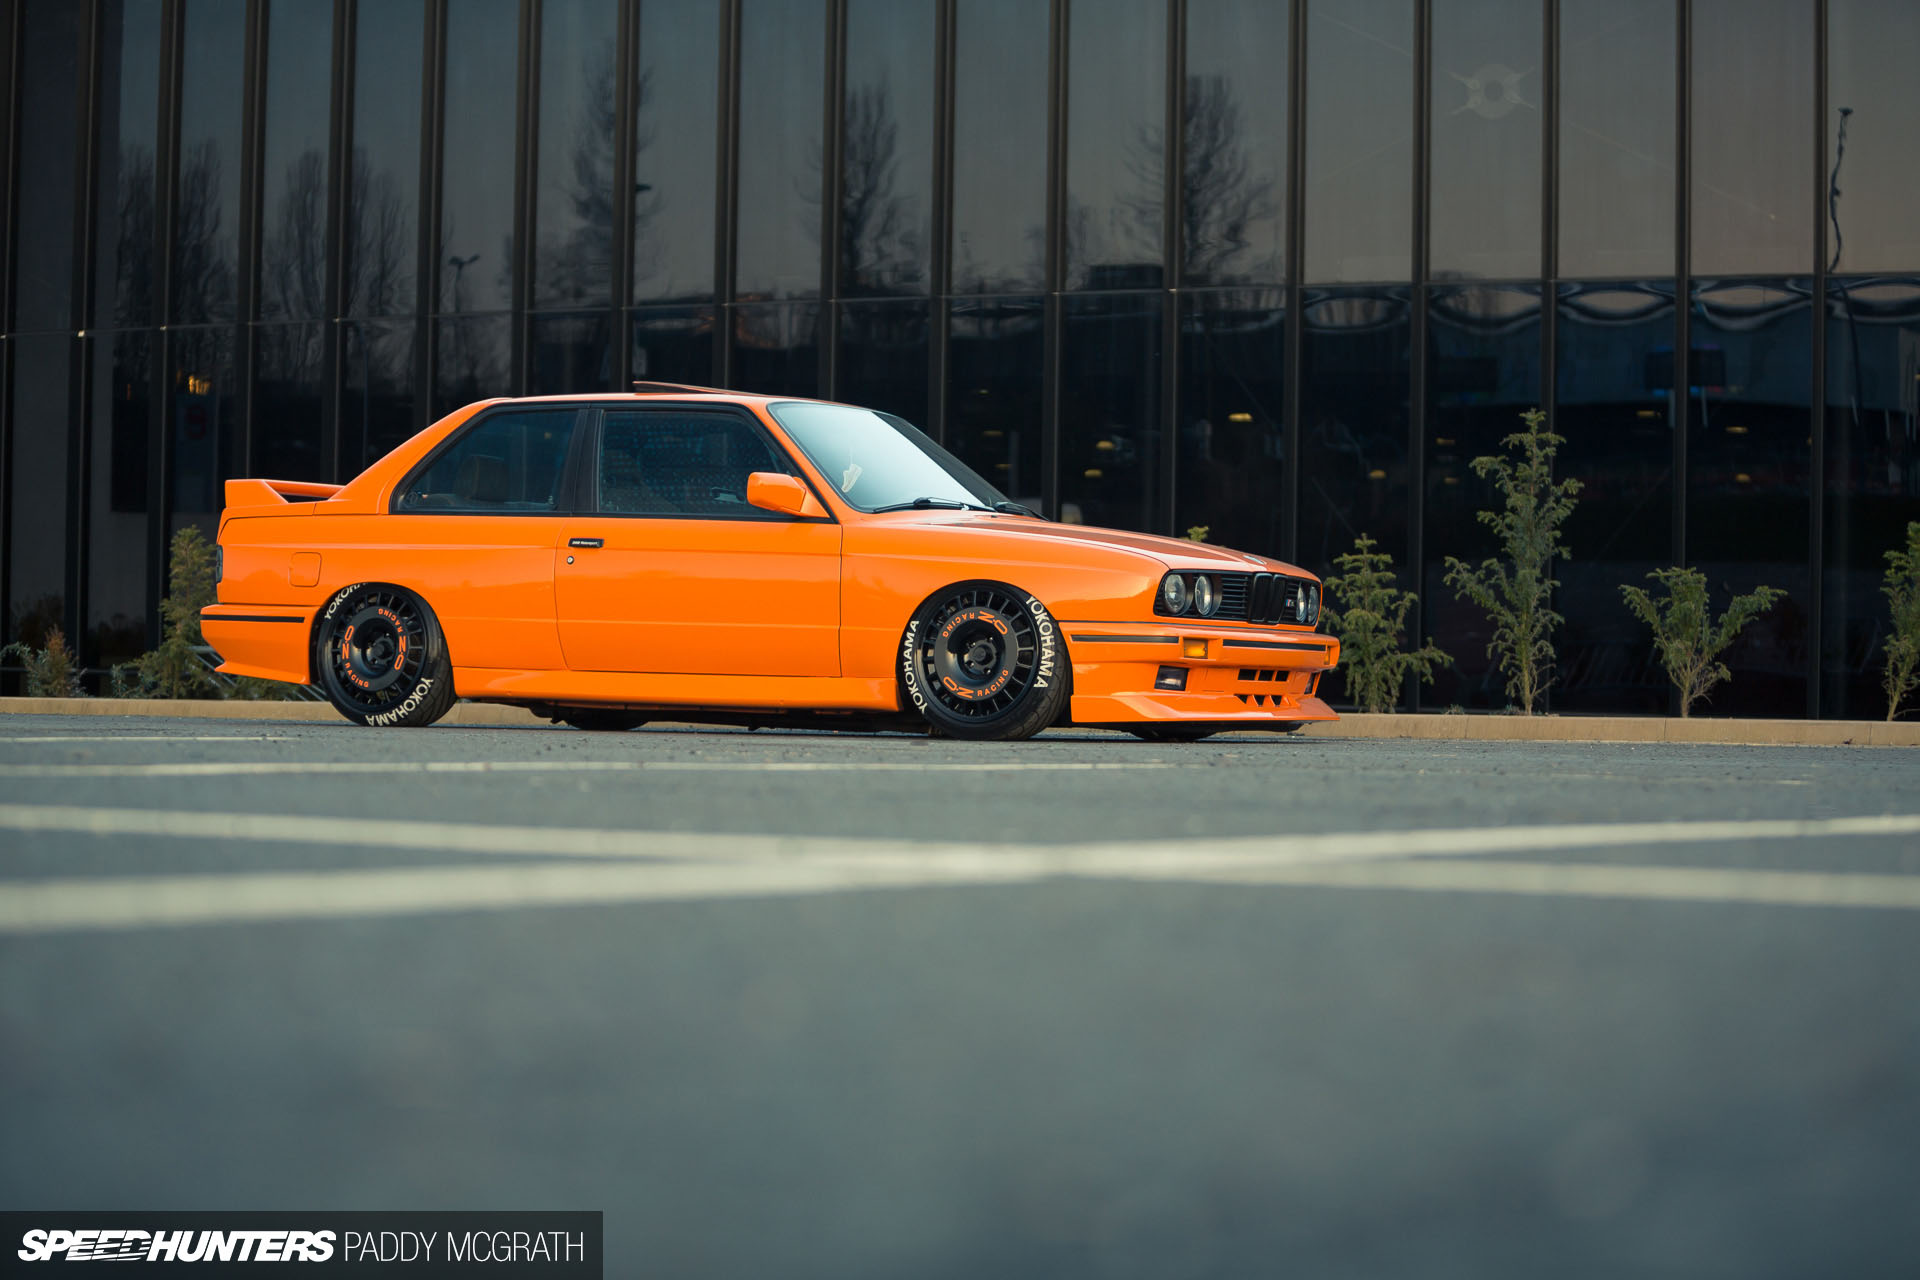 how to make enemies and upset people speedhunters